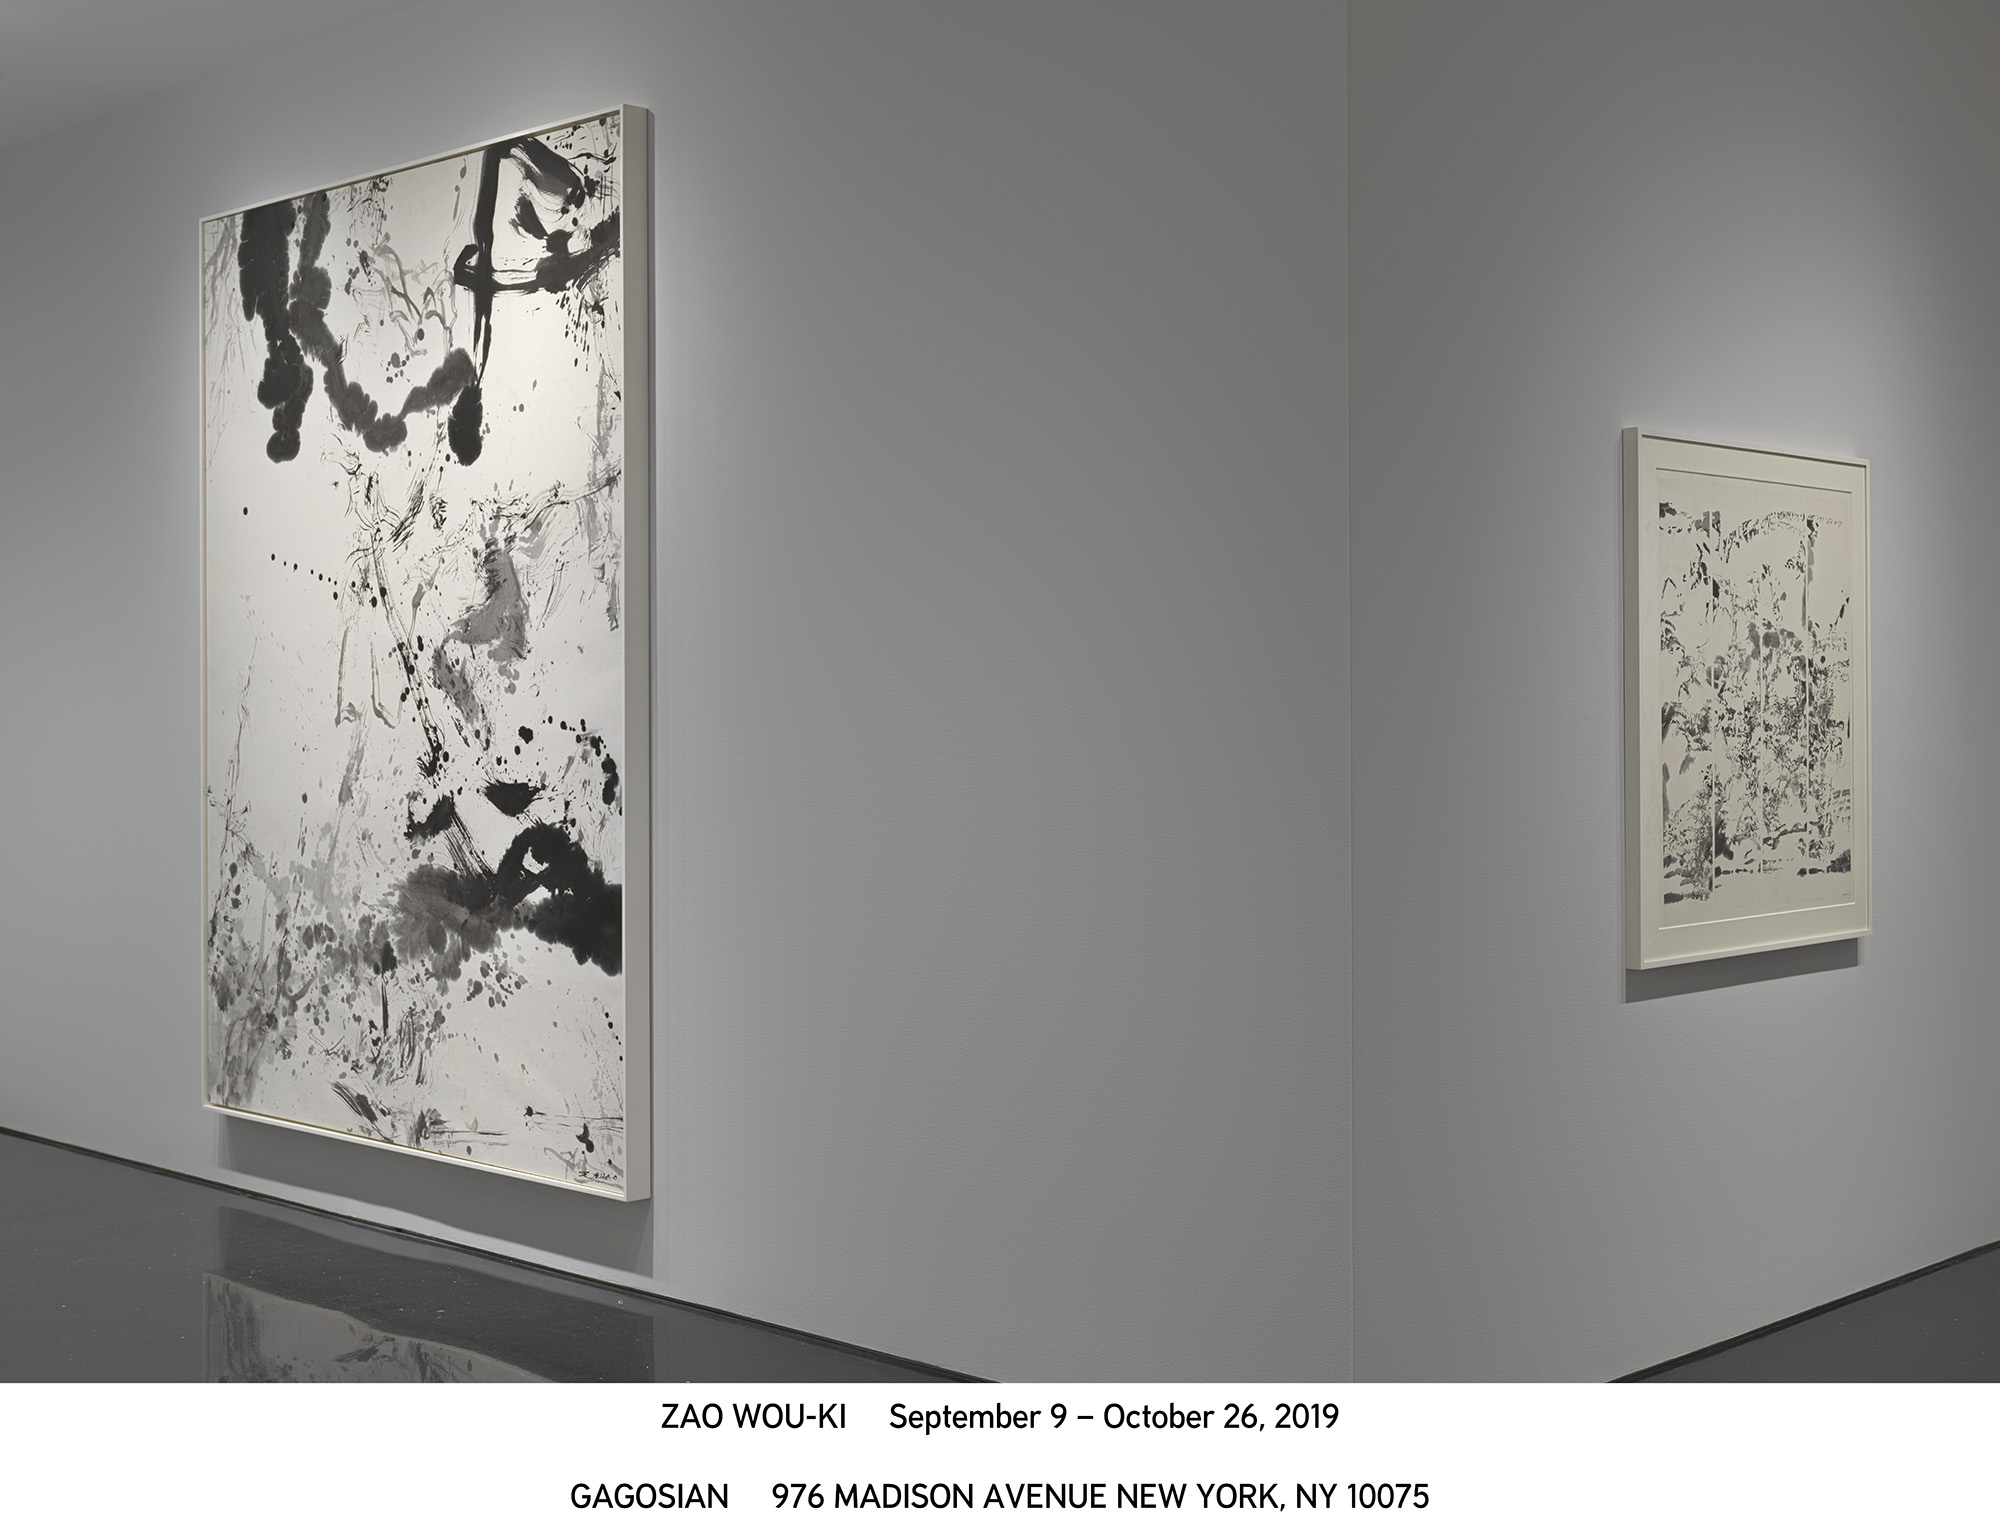 Zao Wou-Ki exhibition at the Gagosian Gallery in New York. Photo: Gagosian Gallery